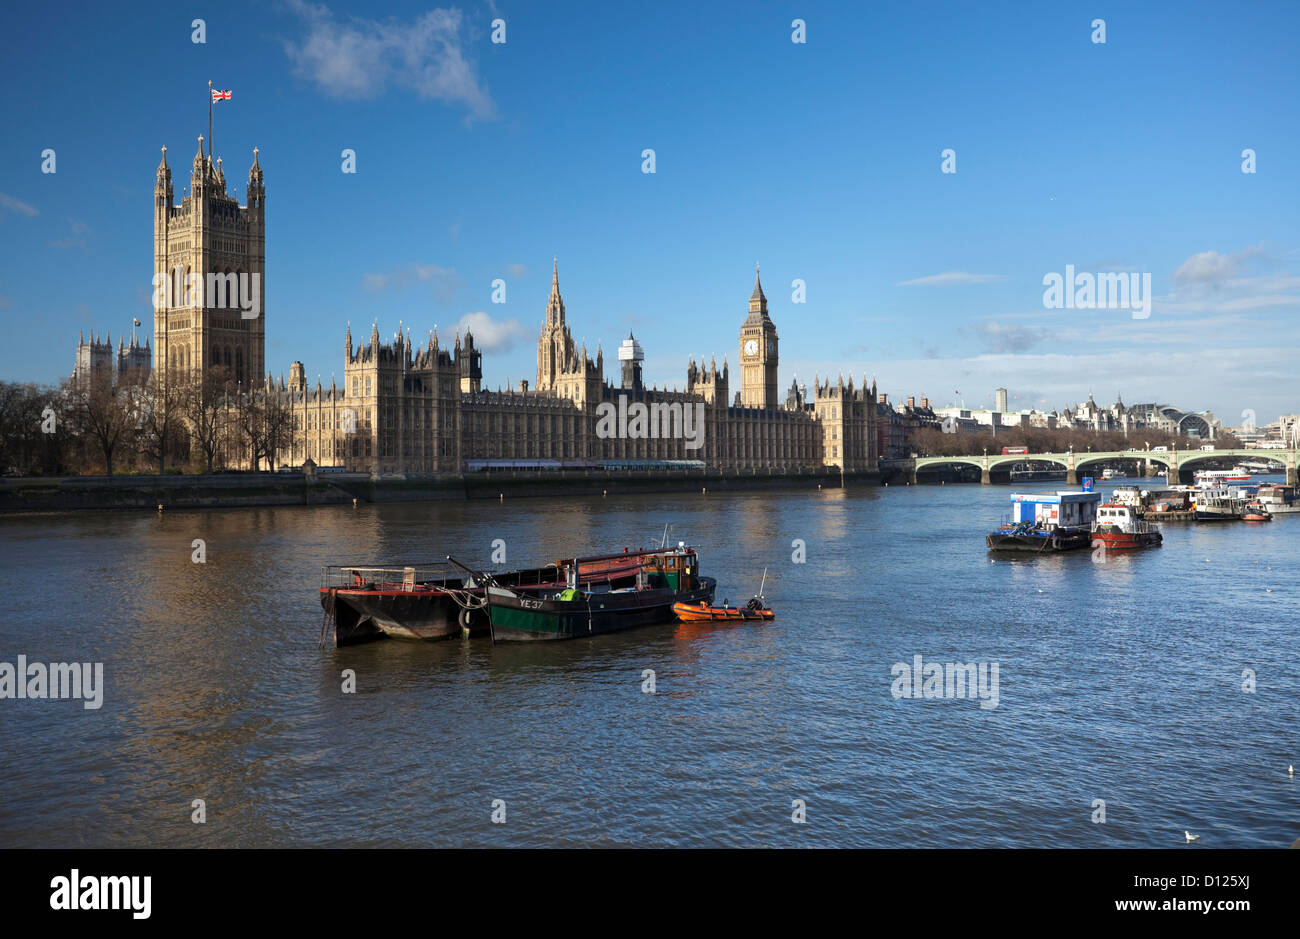 River Thames and the Palace of Westminster, London, England, UK - Stock Image